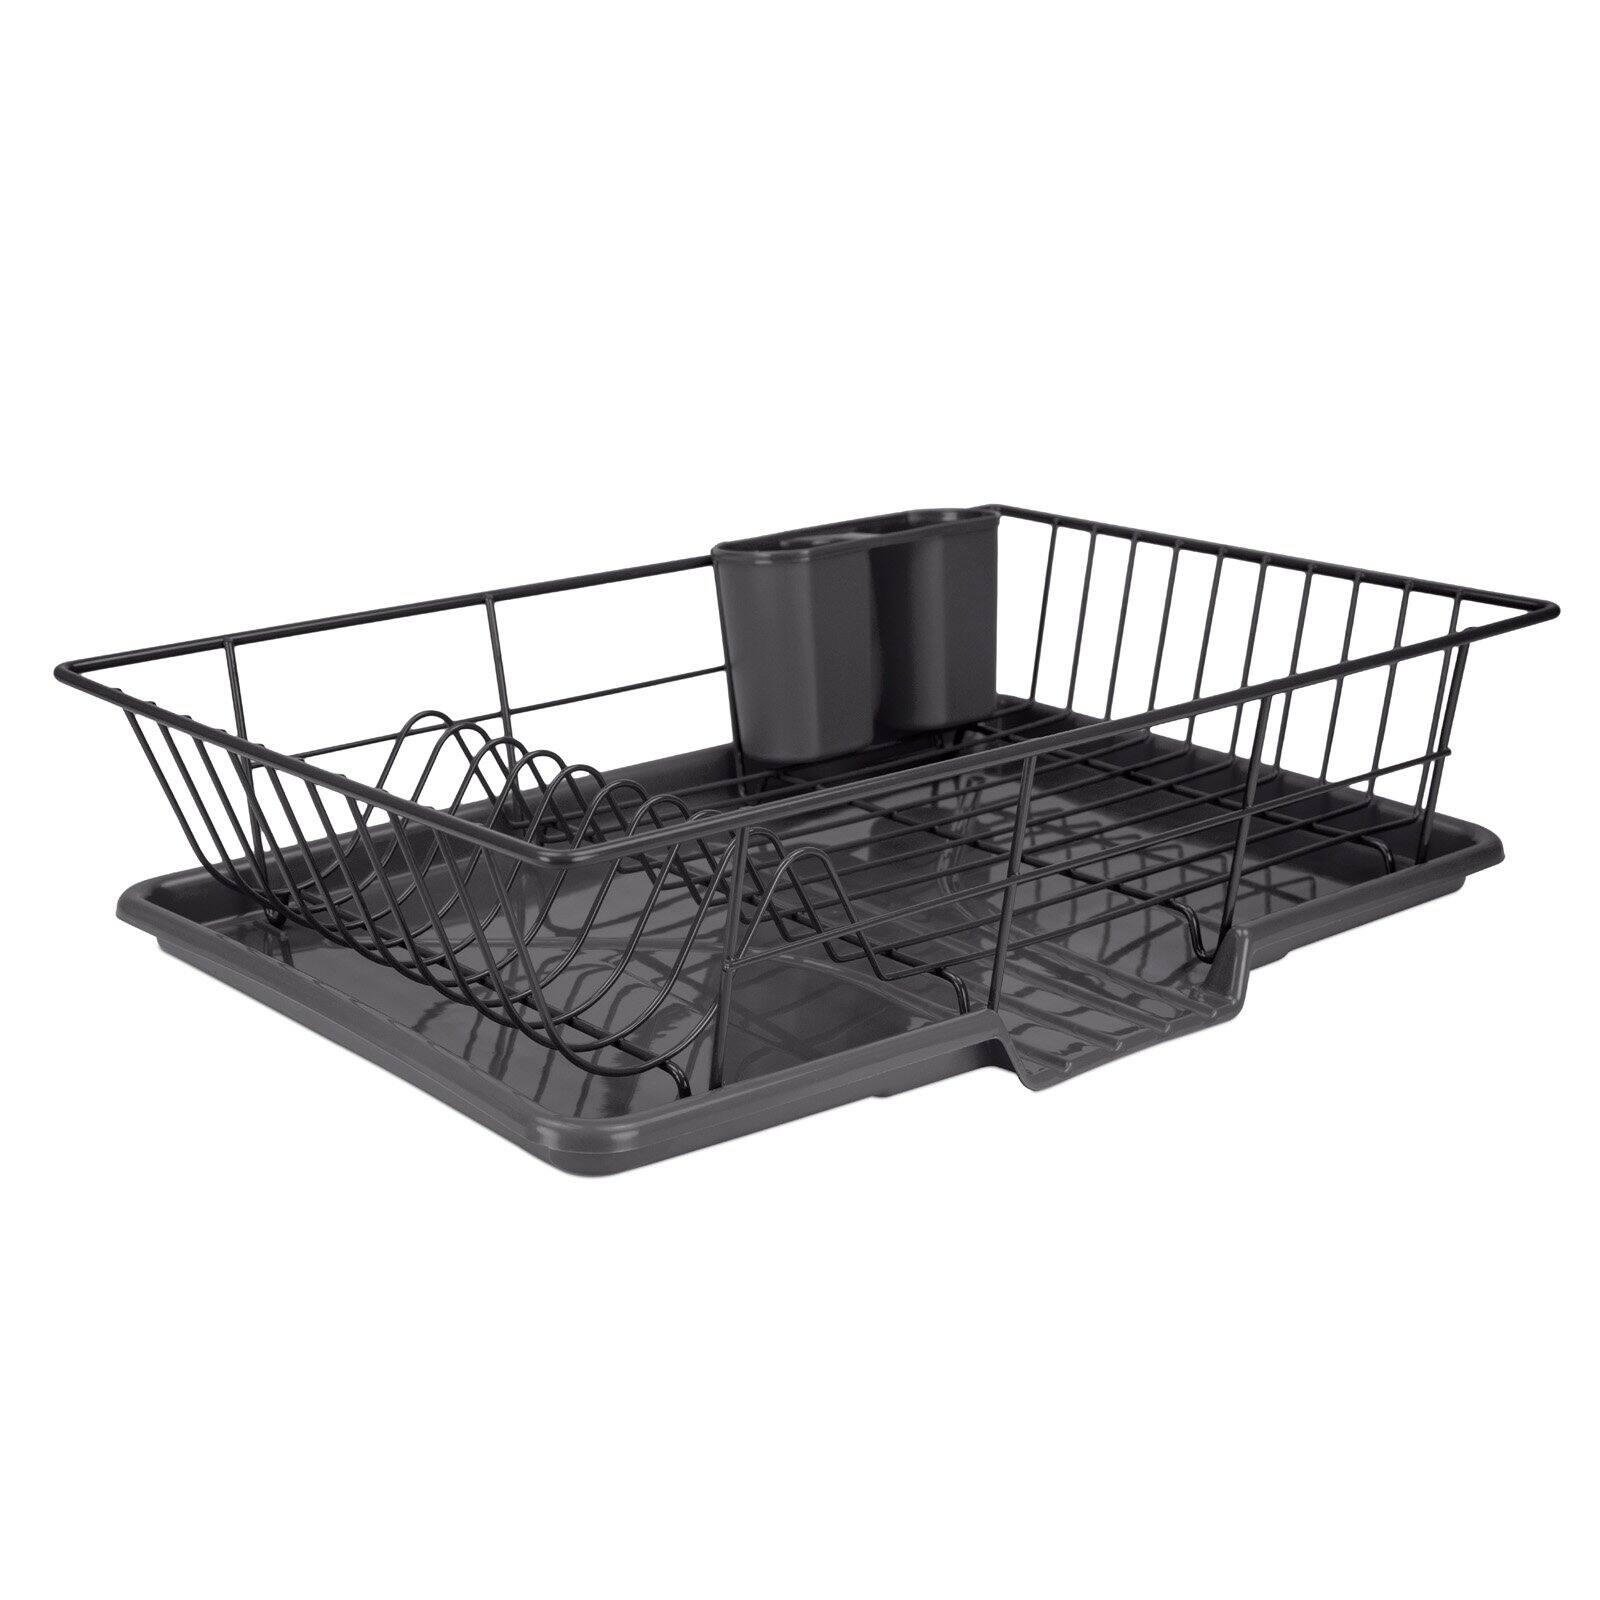 Home Intuition 3-Piece Dish Drying Rack Drainer Set 17 x 13.75 x 5 Black